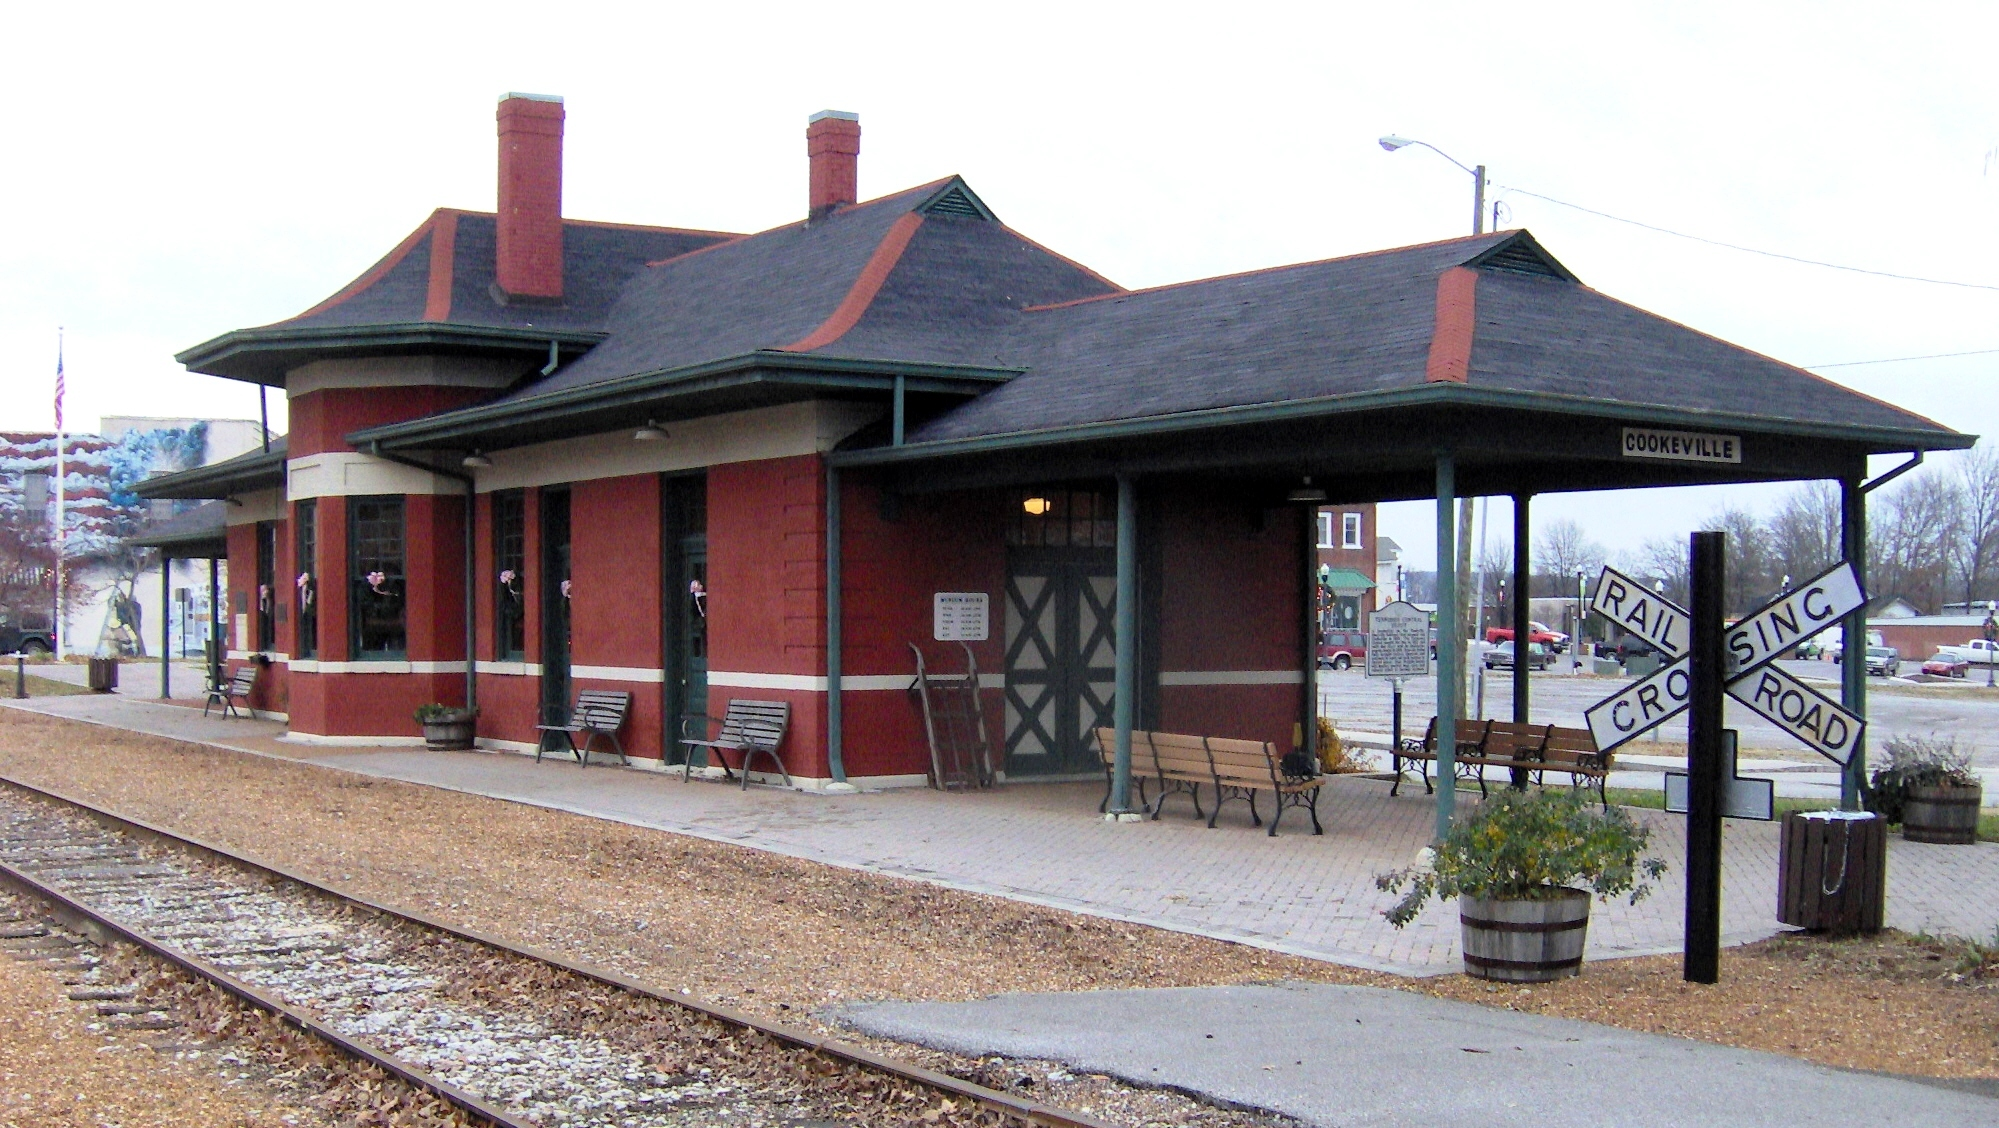 File:Cookeville-tn-central-depot-tn1.jpg - Wikimedia Commons